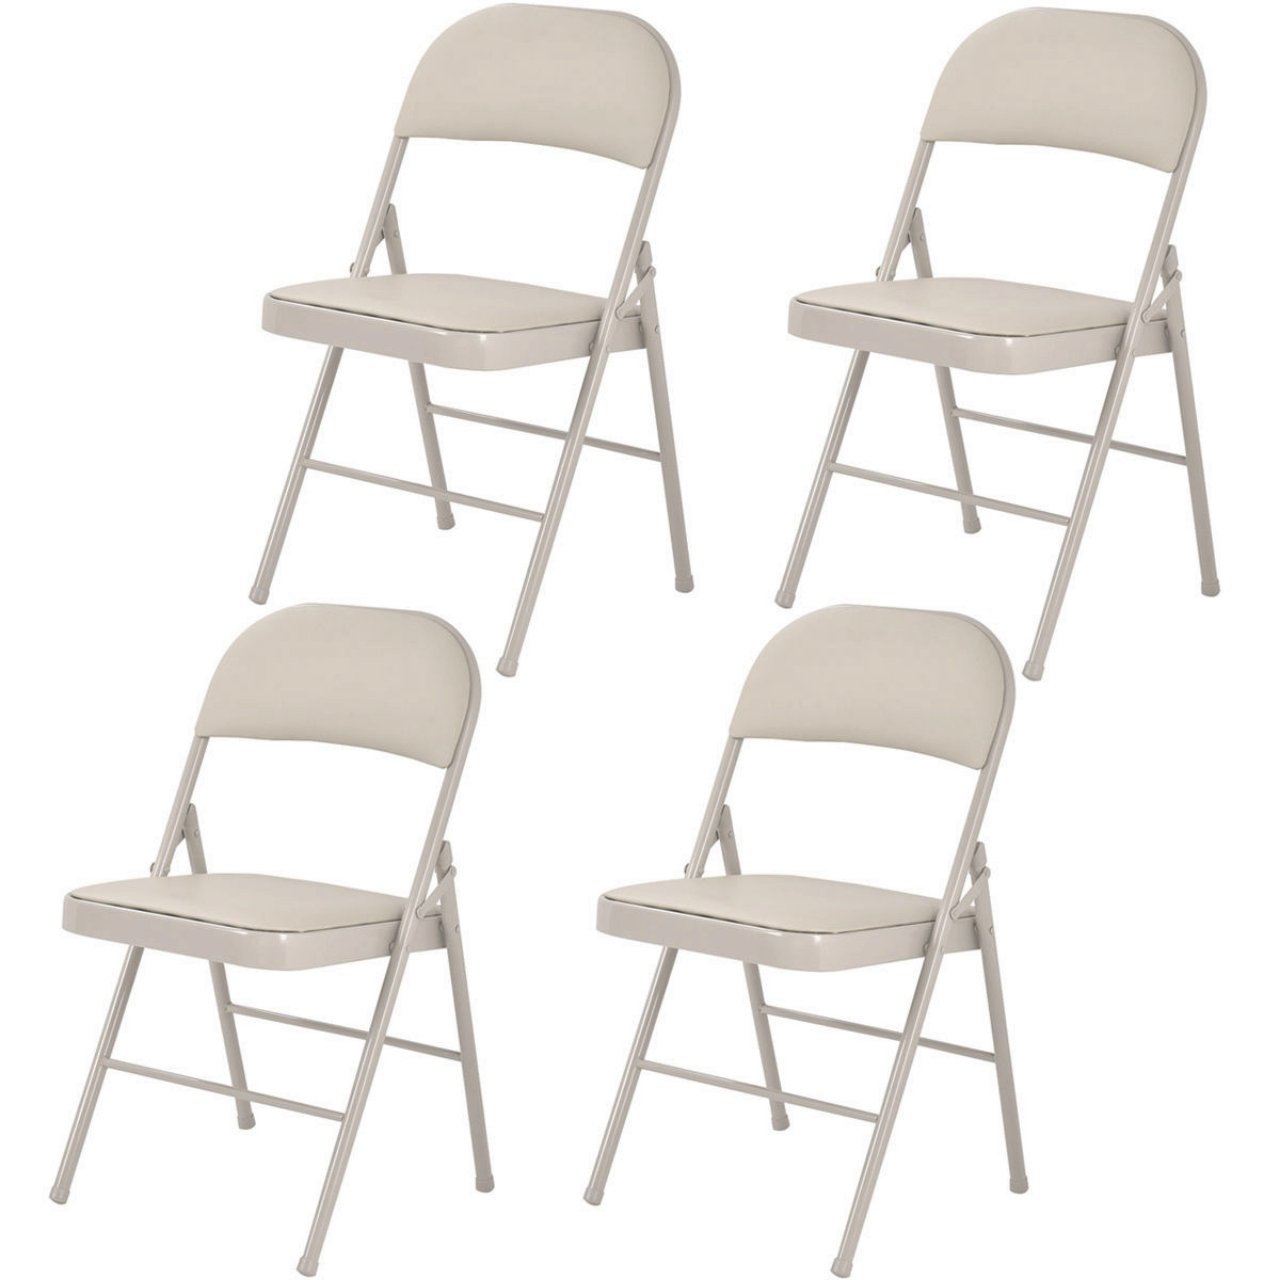 Set of 4 Folding Chairs Heavy-load Steel Frame Portable Home Garden Office Furniture/ Beige #1010